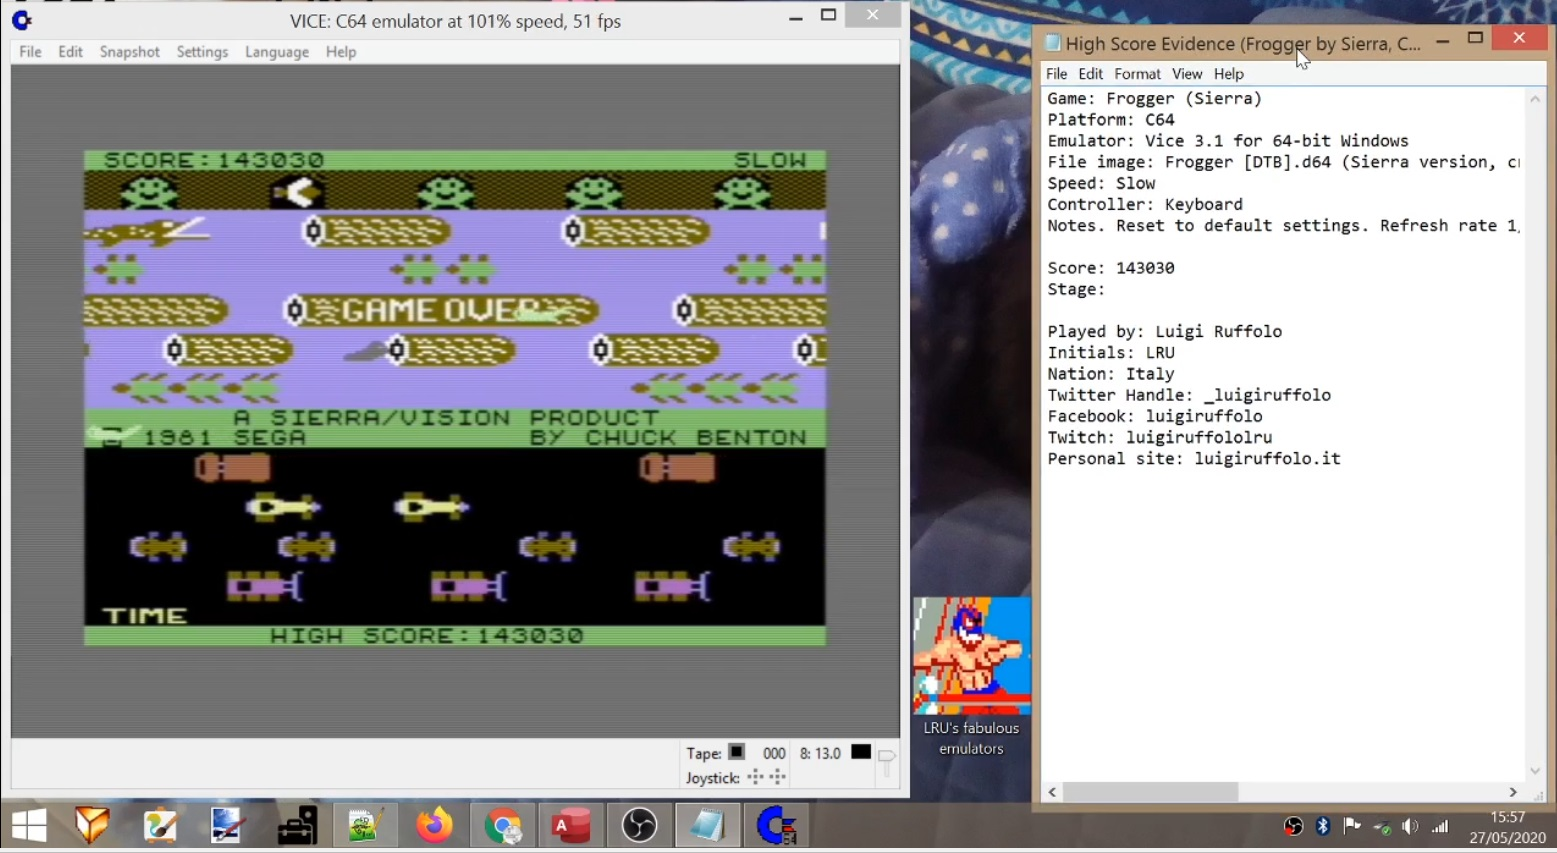 LuigiRuffolo: Frogger: Sierra [Slow] (Commodore 64 Emulated) 143,030 points on 2020-05-27 11:52:18